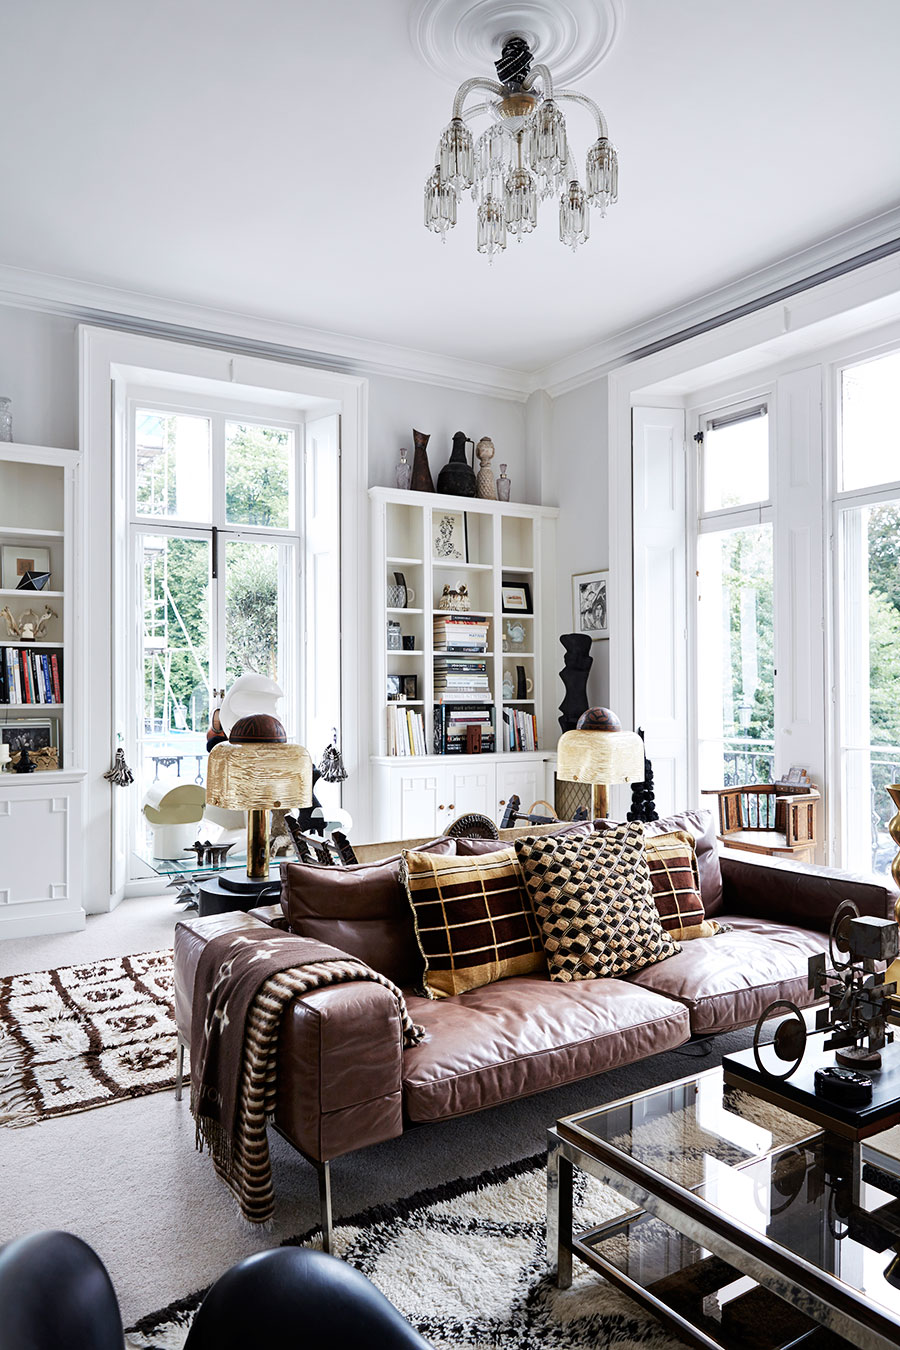 Amazing Boho Chic Interior In London By Malene Birger